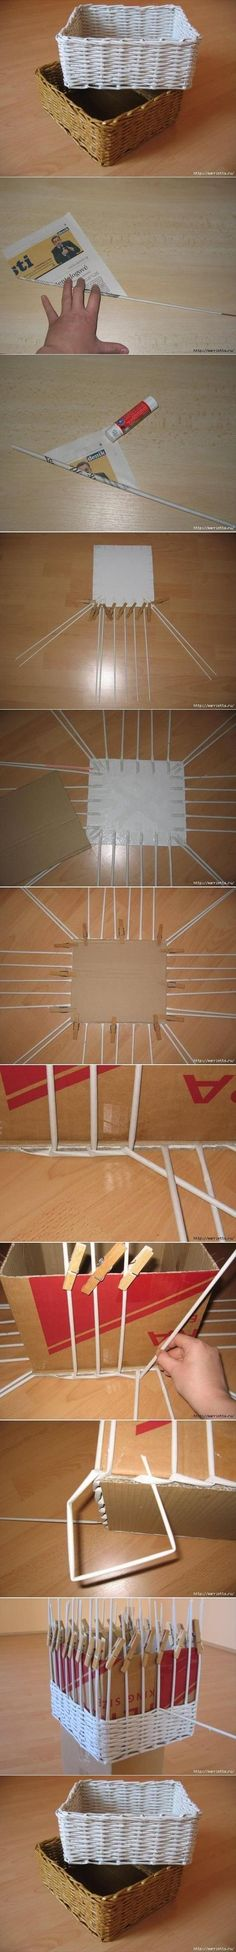 Dump A Day Do It Yourself Craft Ideas - 39 Pics